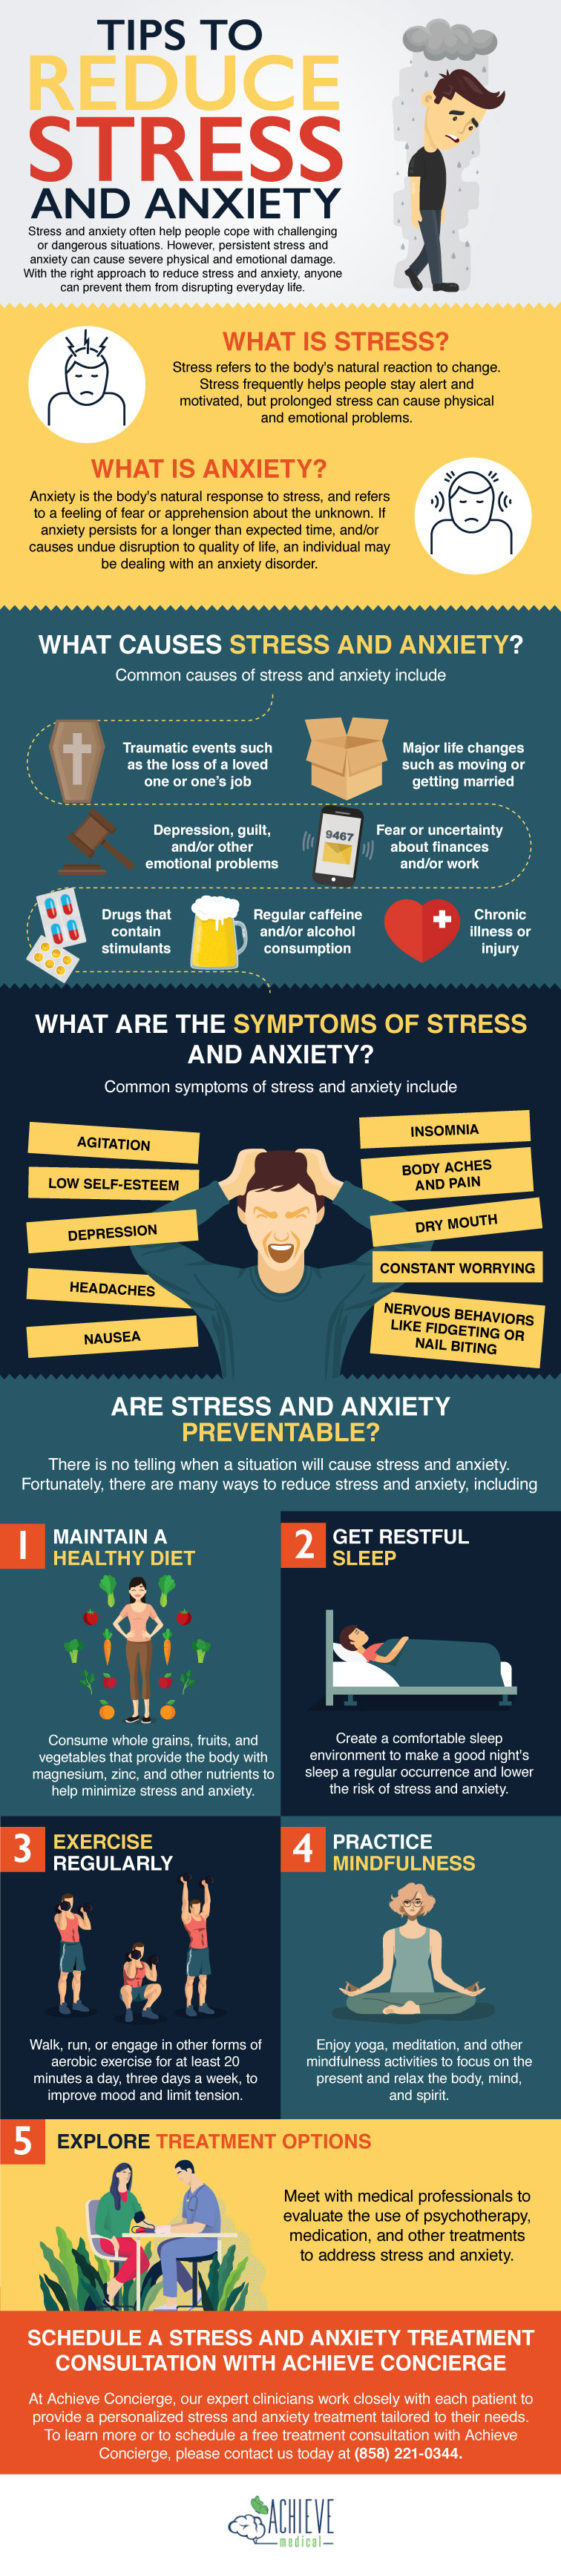 Tips to Reduce Stress and Anxiety